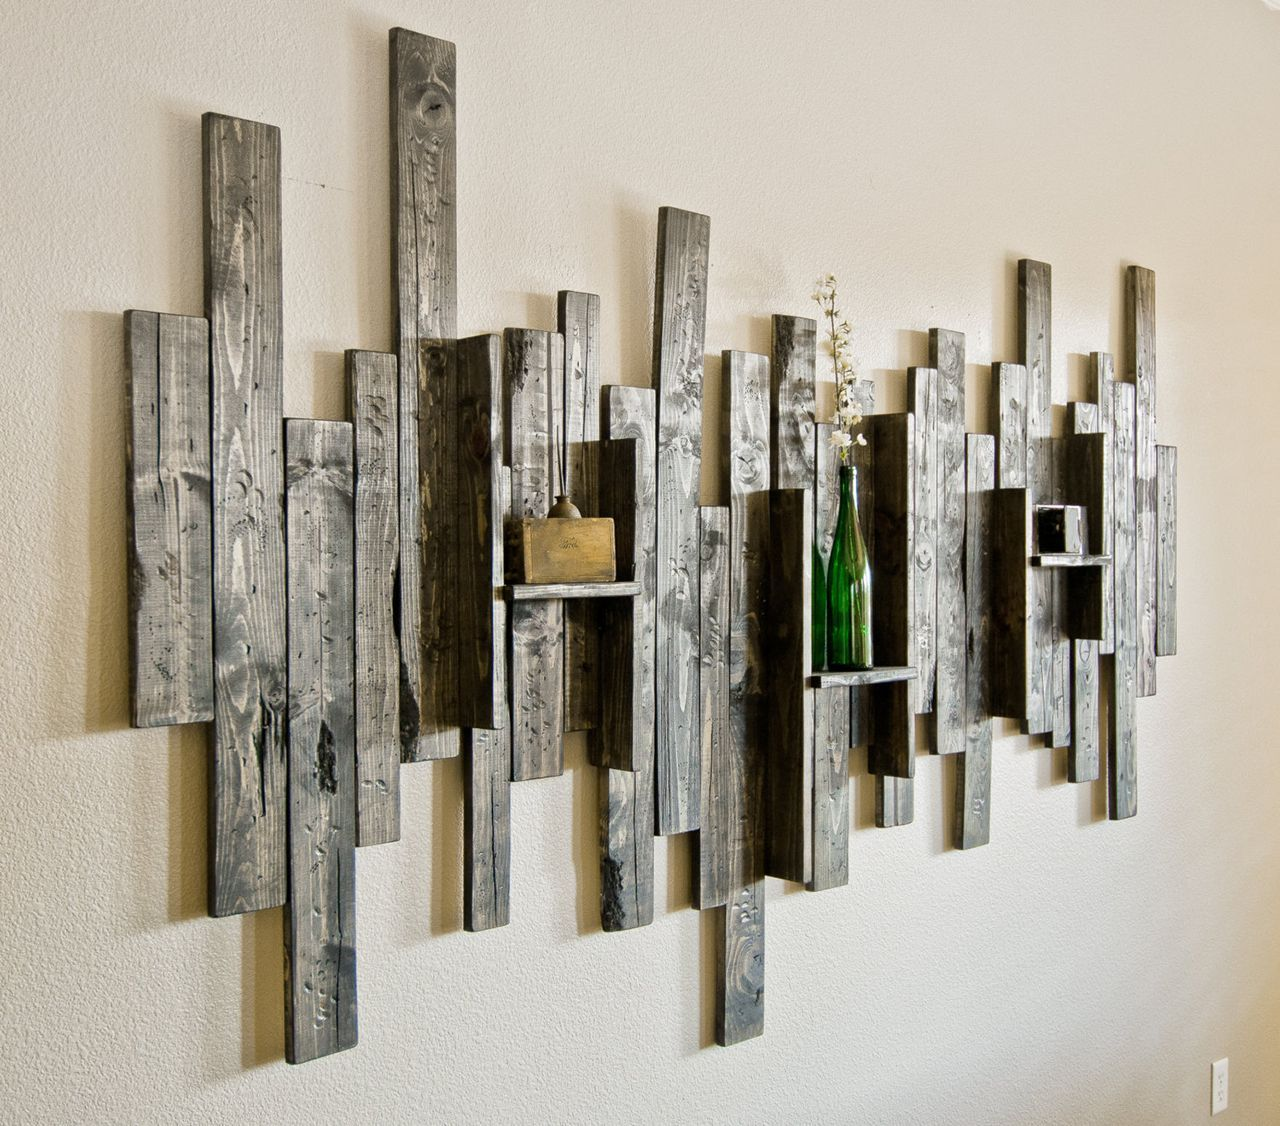 Abstract wall art and shelf from rustic barn wood get boards from ww shed would be awesome artsandcrafts